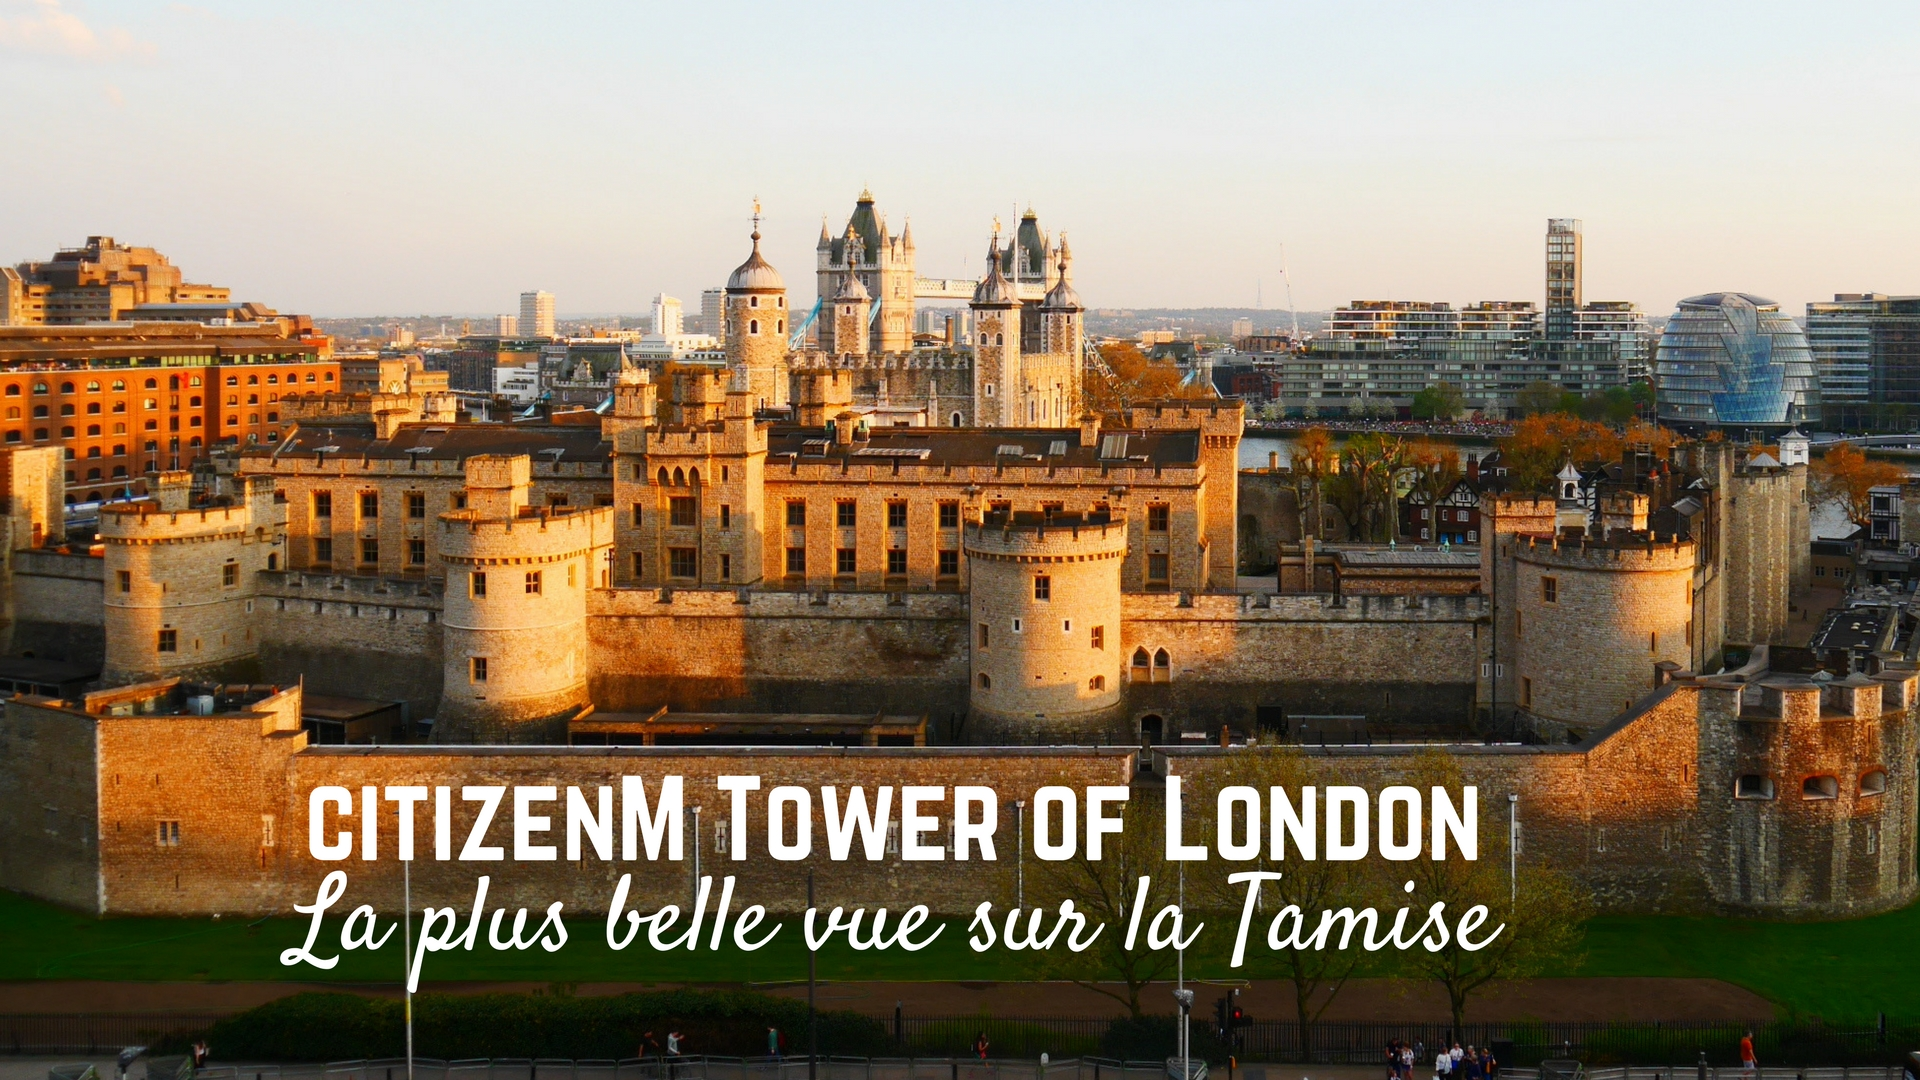 citizenM tower of London titre Arpenter le chemin blog